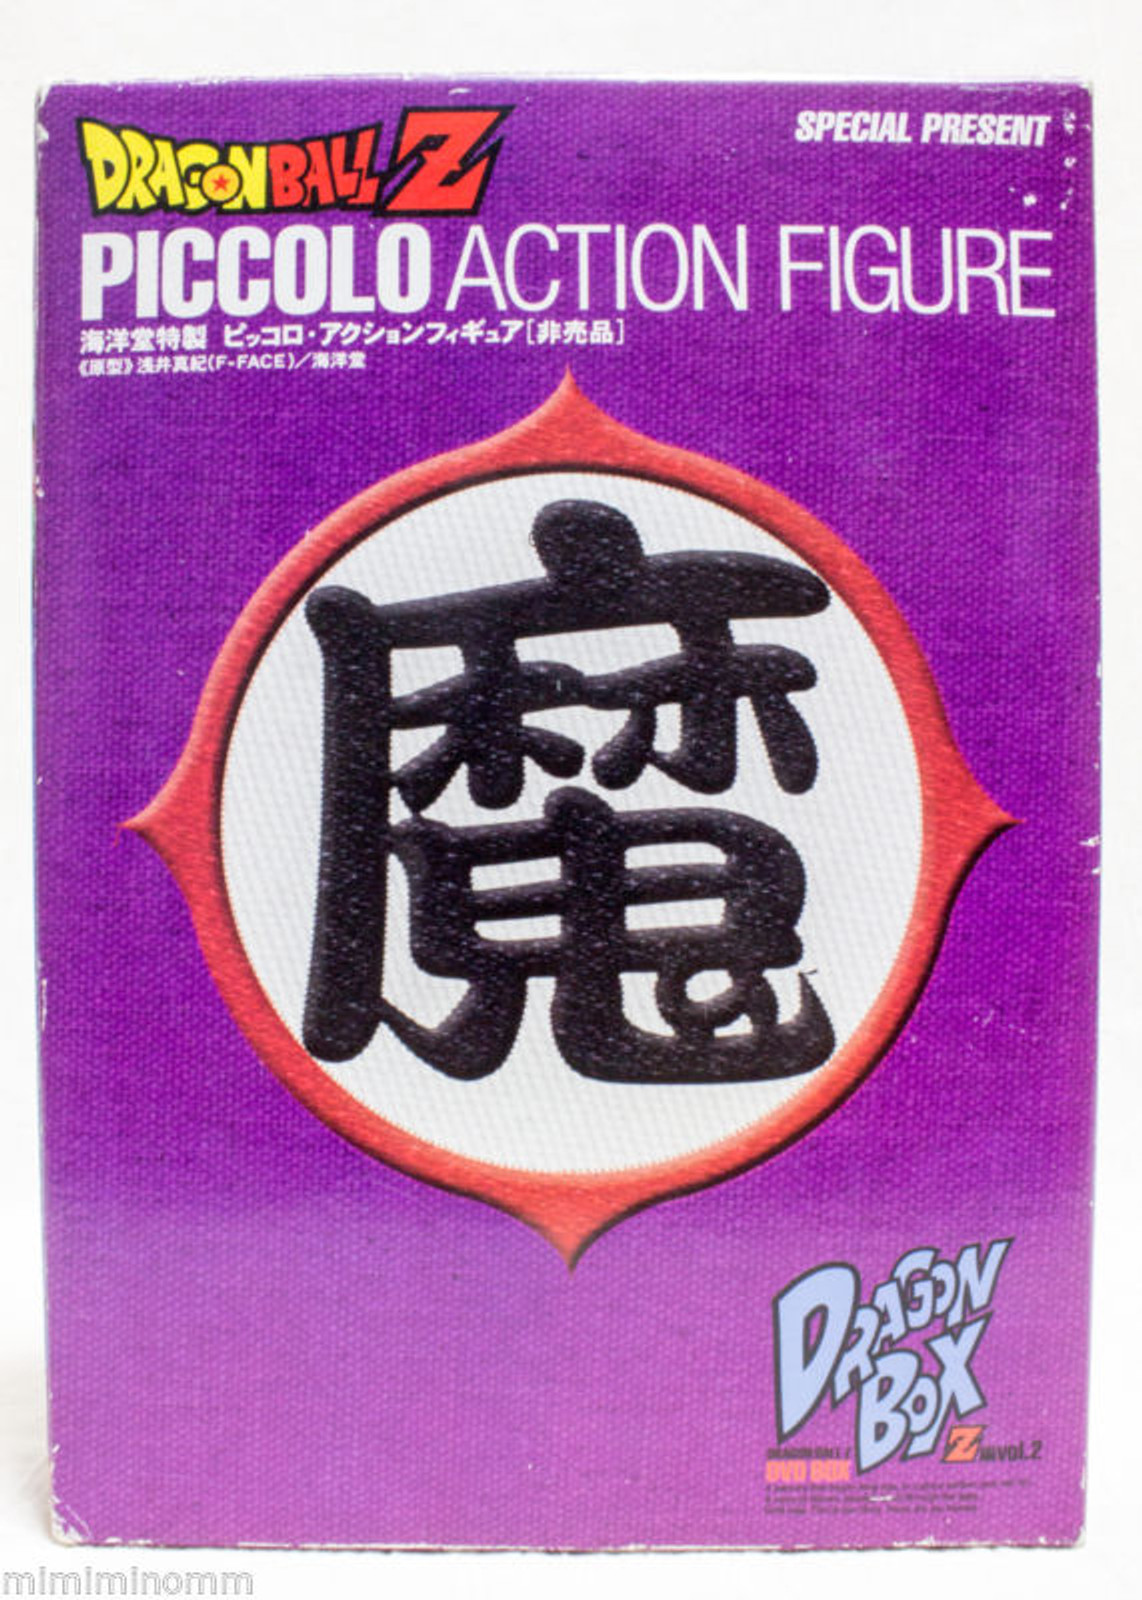 Dragon ball Z Piccolo Figure Kaiyodo Special Present of DVD-BOX JAPAN